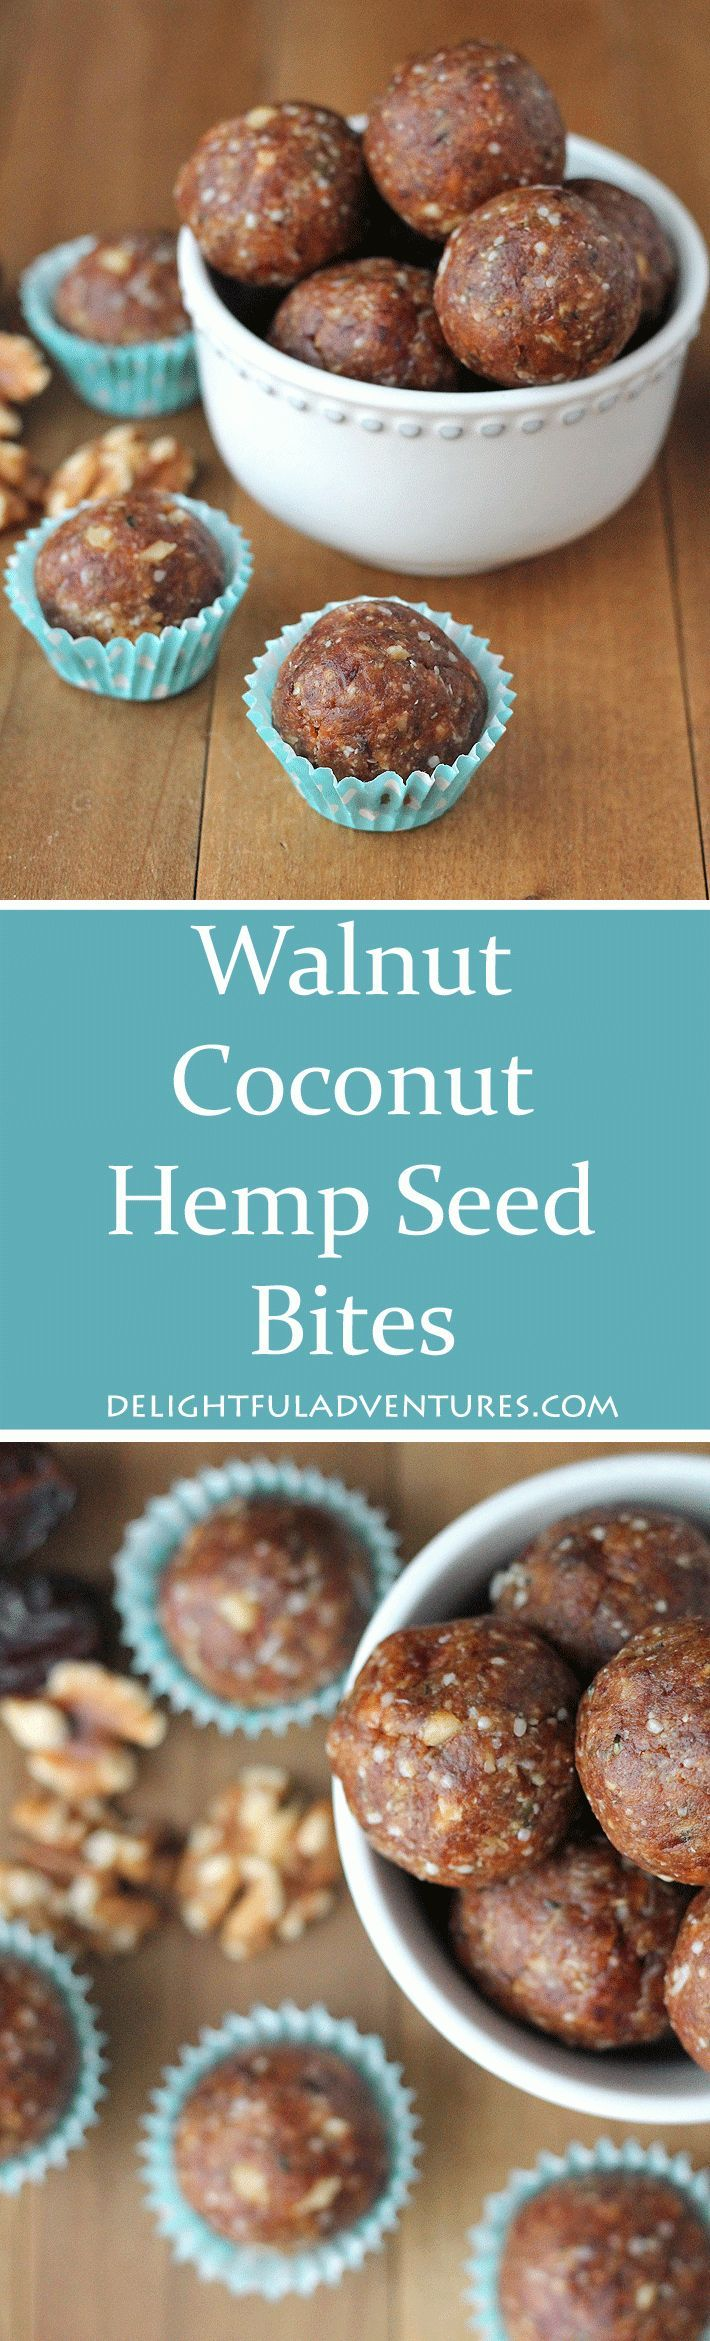 Yummy and nutritious walnut coconut hemp seed bites will kick your afternoon sugar craving to the curb! #hemp #CBD